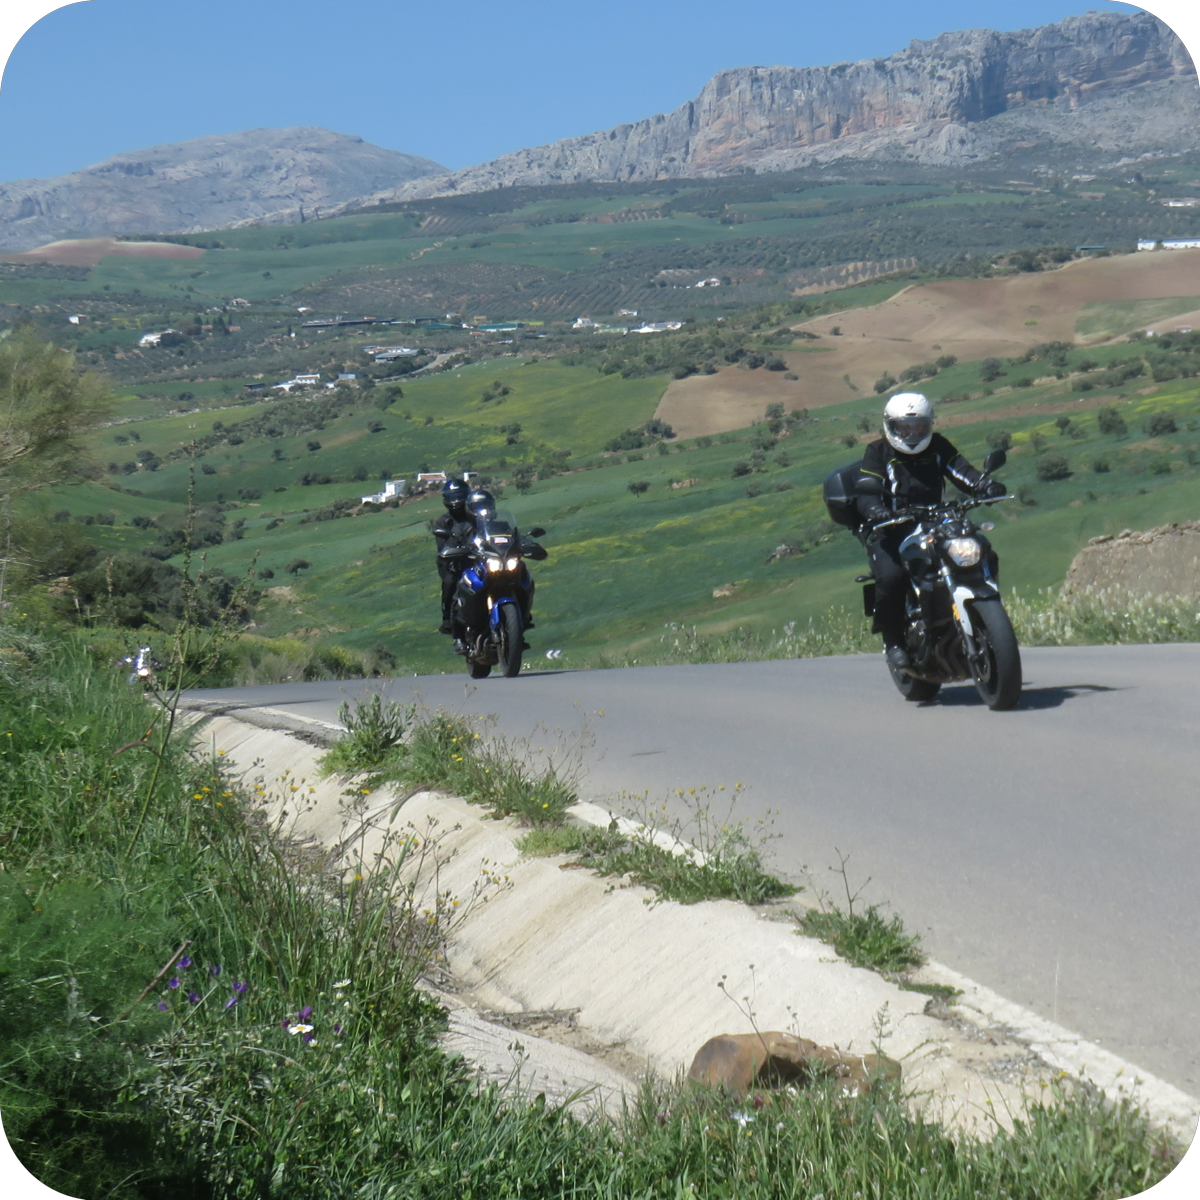 Best motorcycle roads - Andalucia!